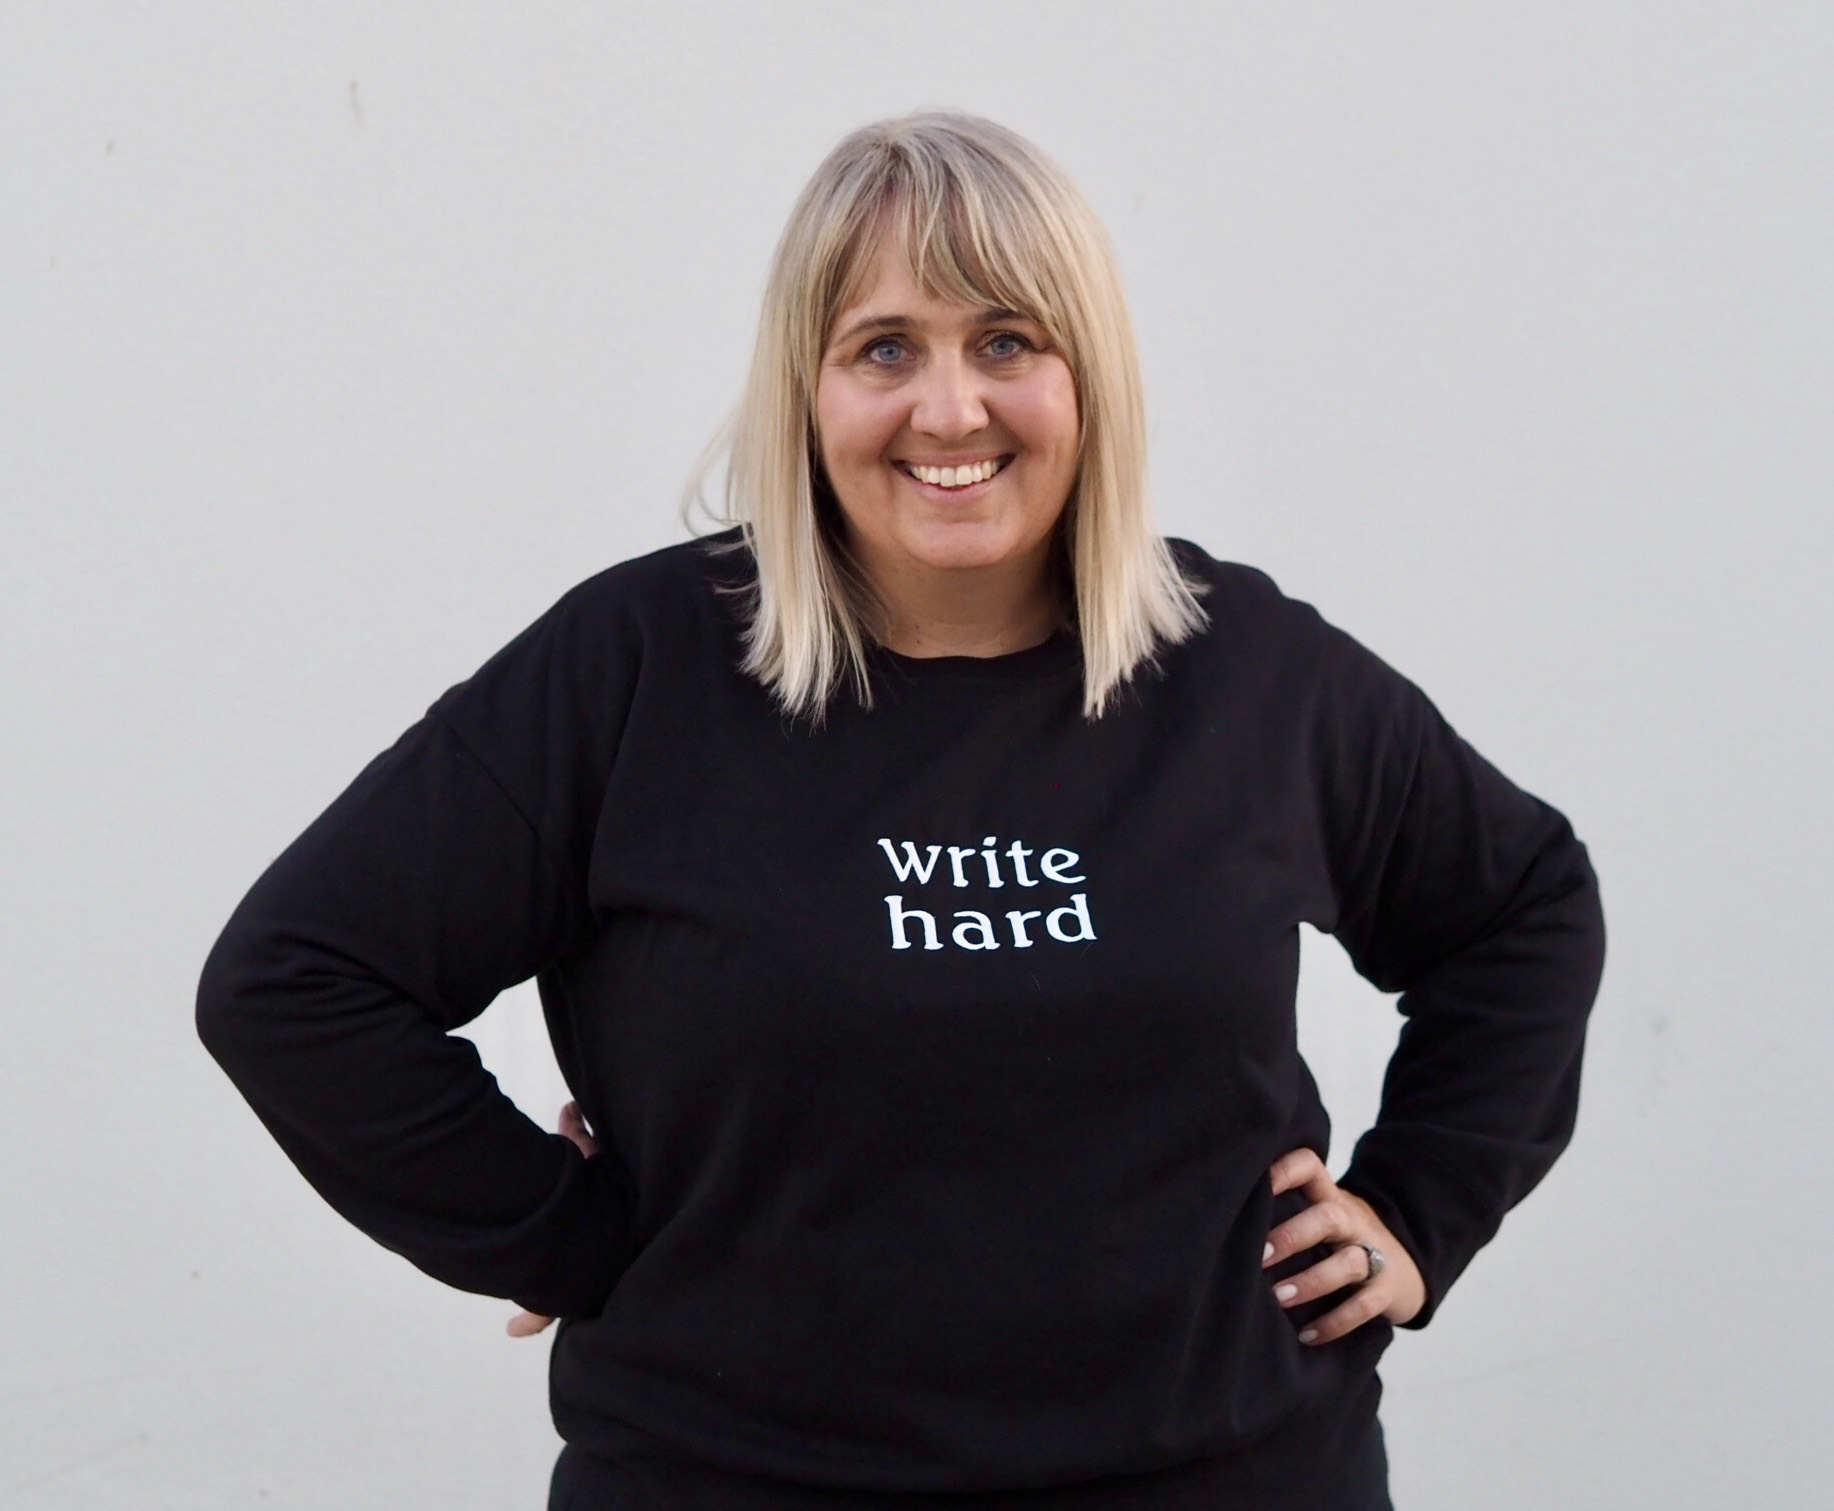 WRITE HARD WORKSHOP